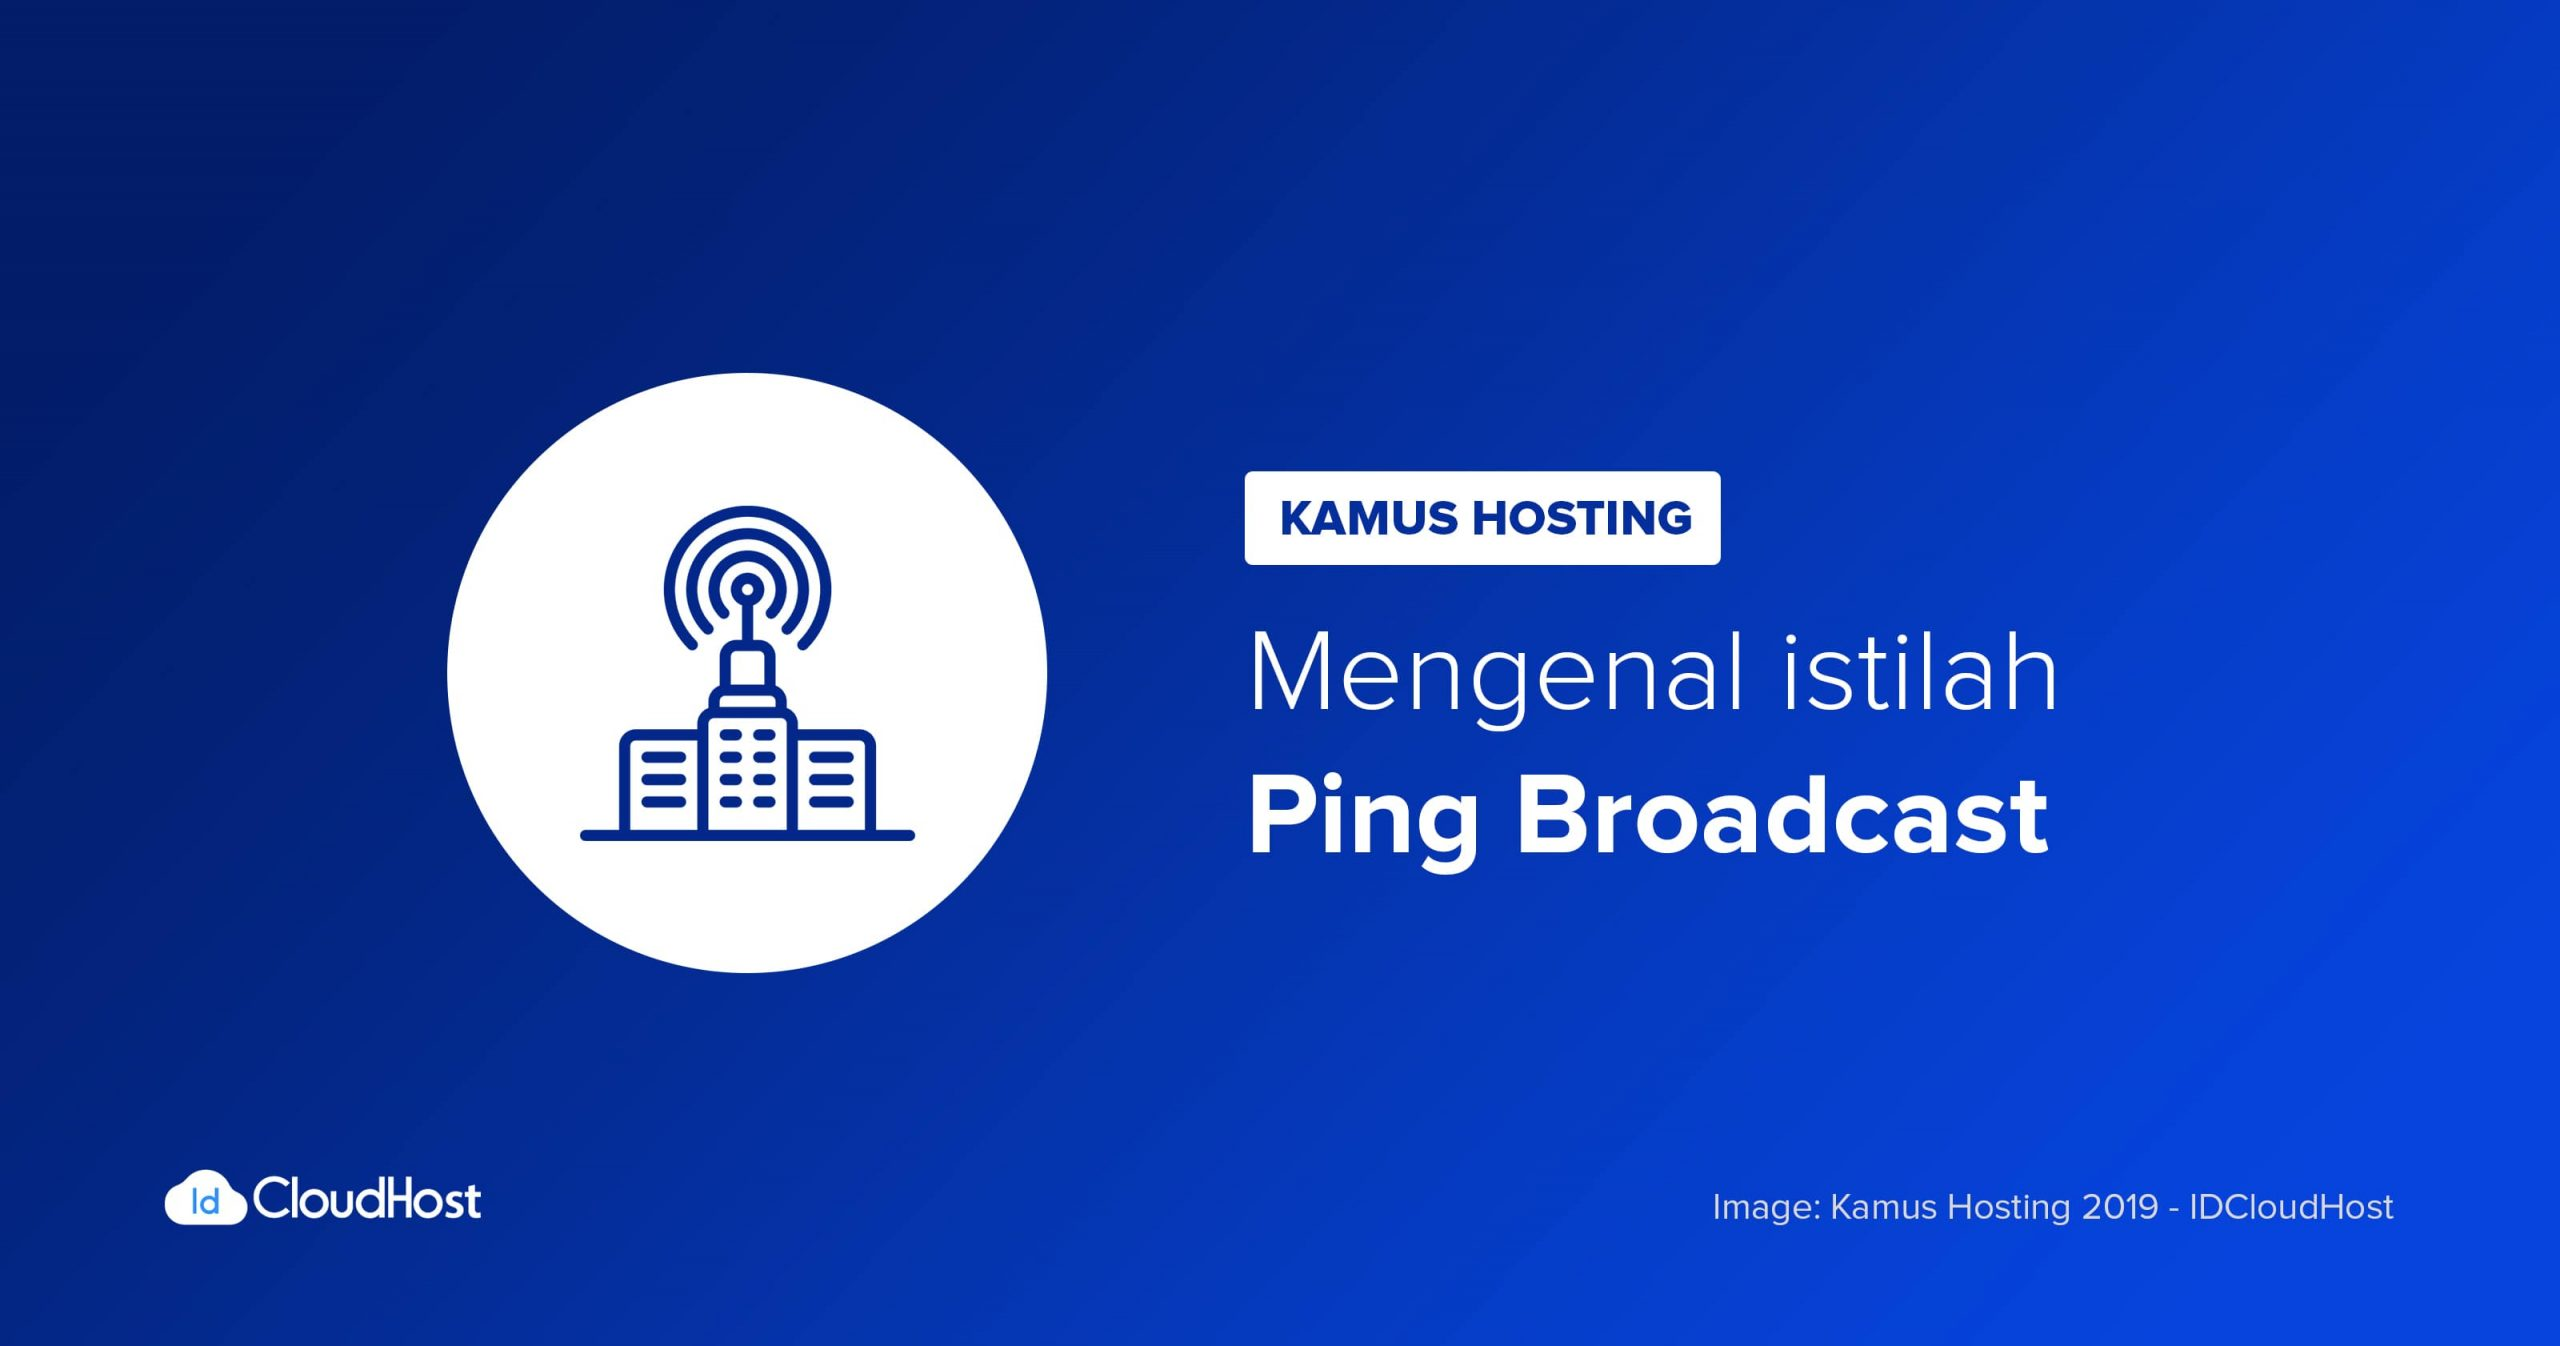 Ping Broadcast